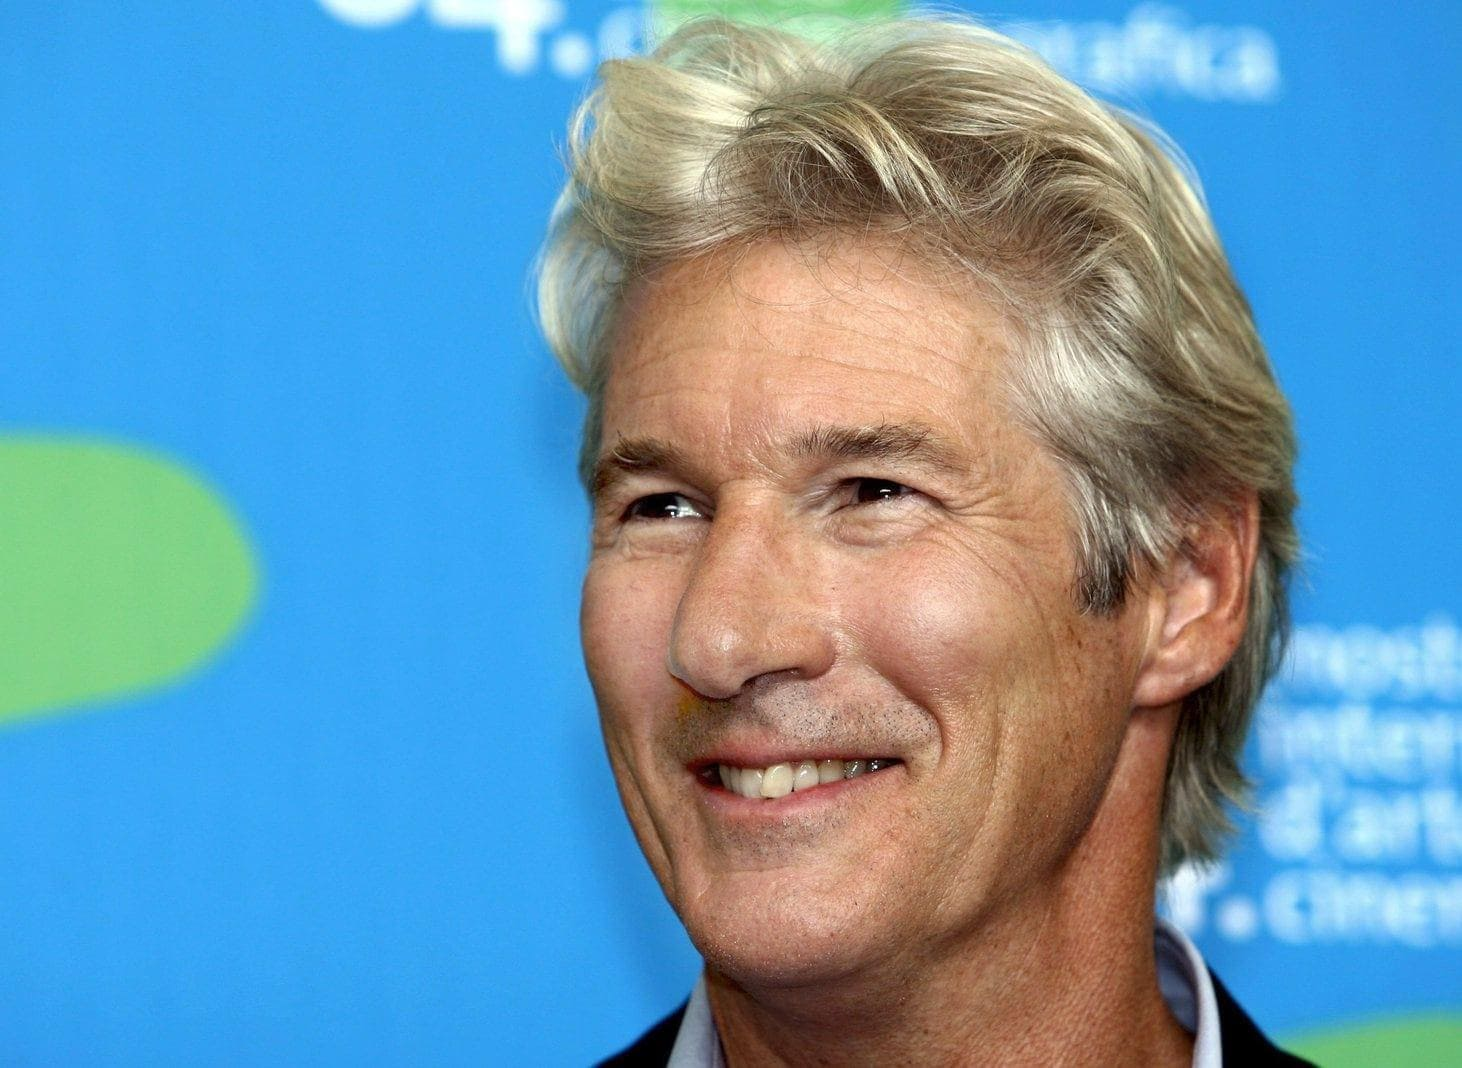 Richard Gere BS 2